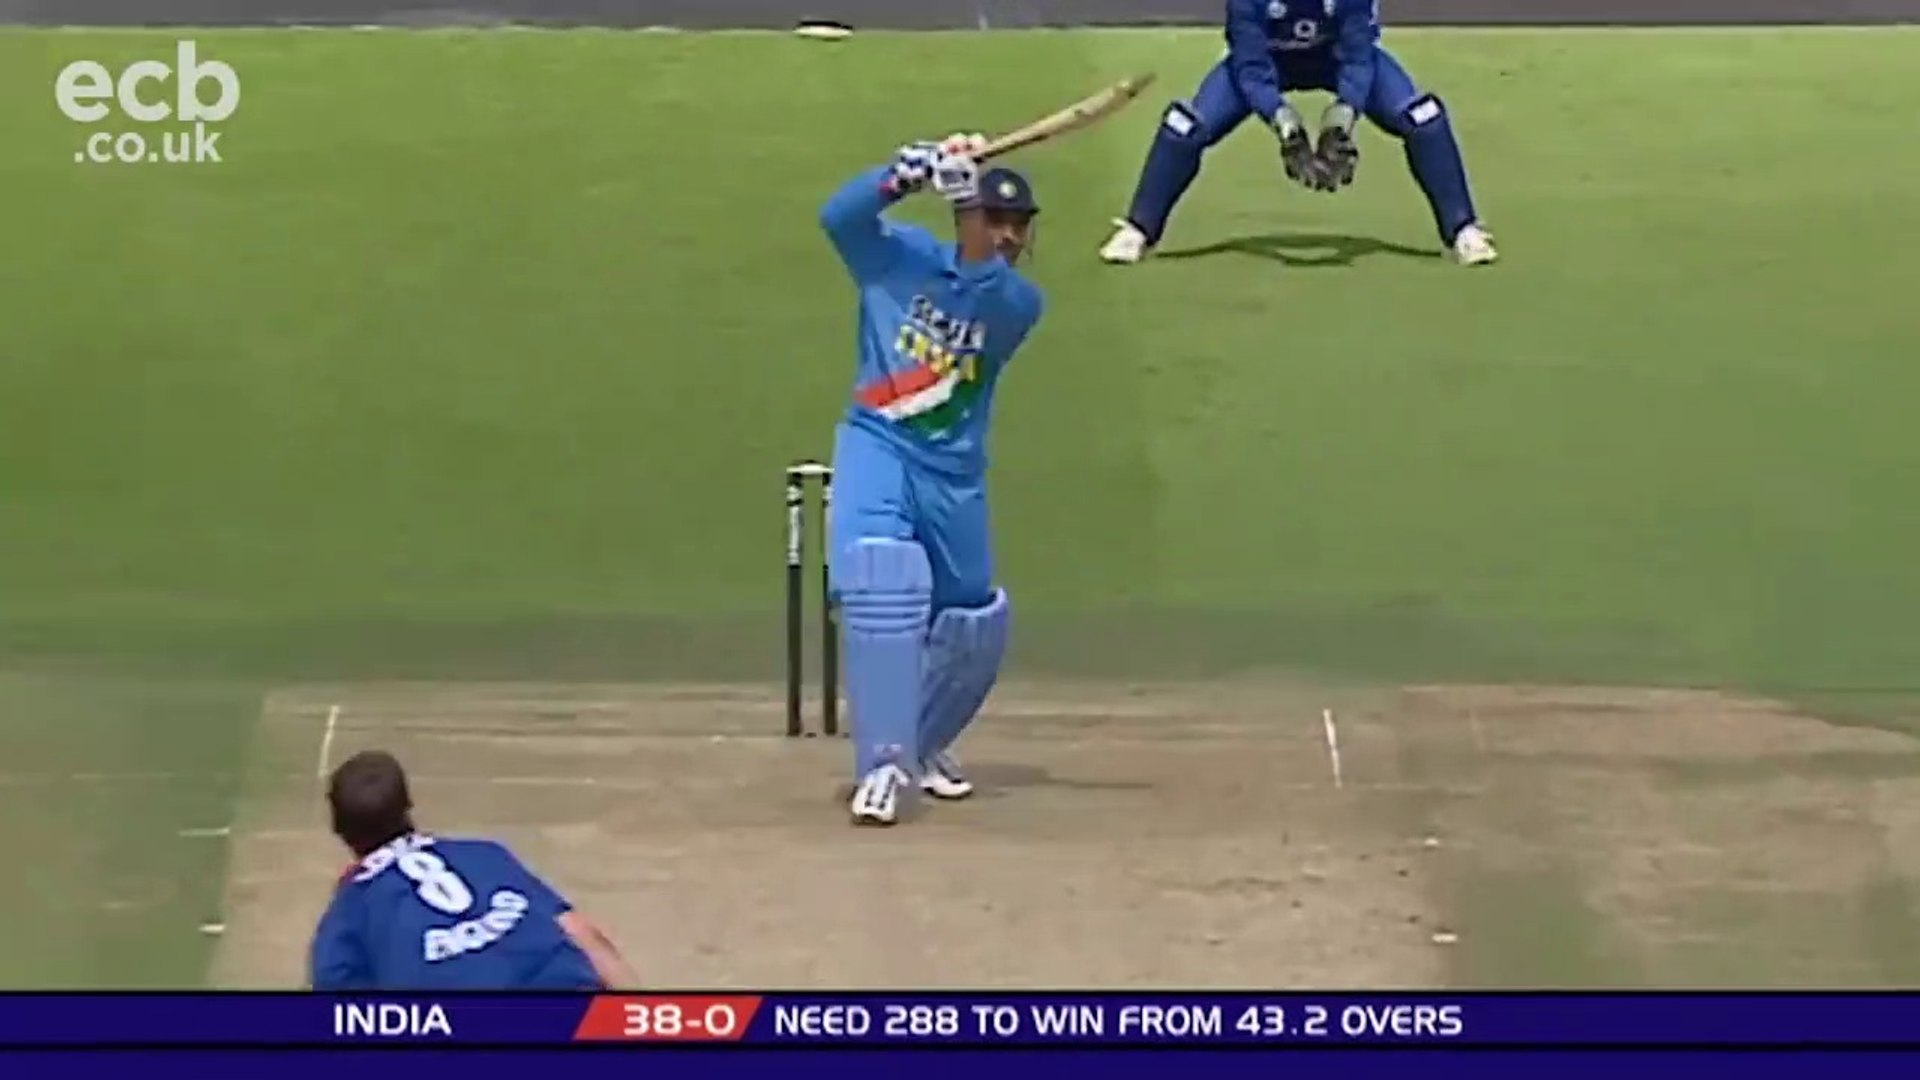 One Of The Greatest ODI Matches Ever _ England v India NatWest Series Final 2002 - Full Highlights    India Vs England Cricket Match Highlight 2002